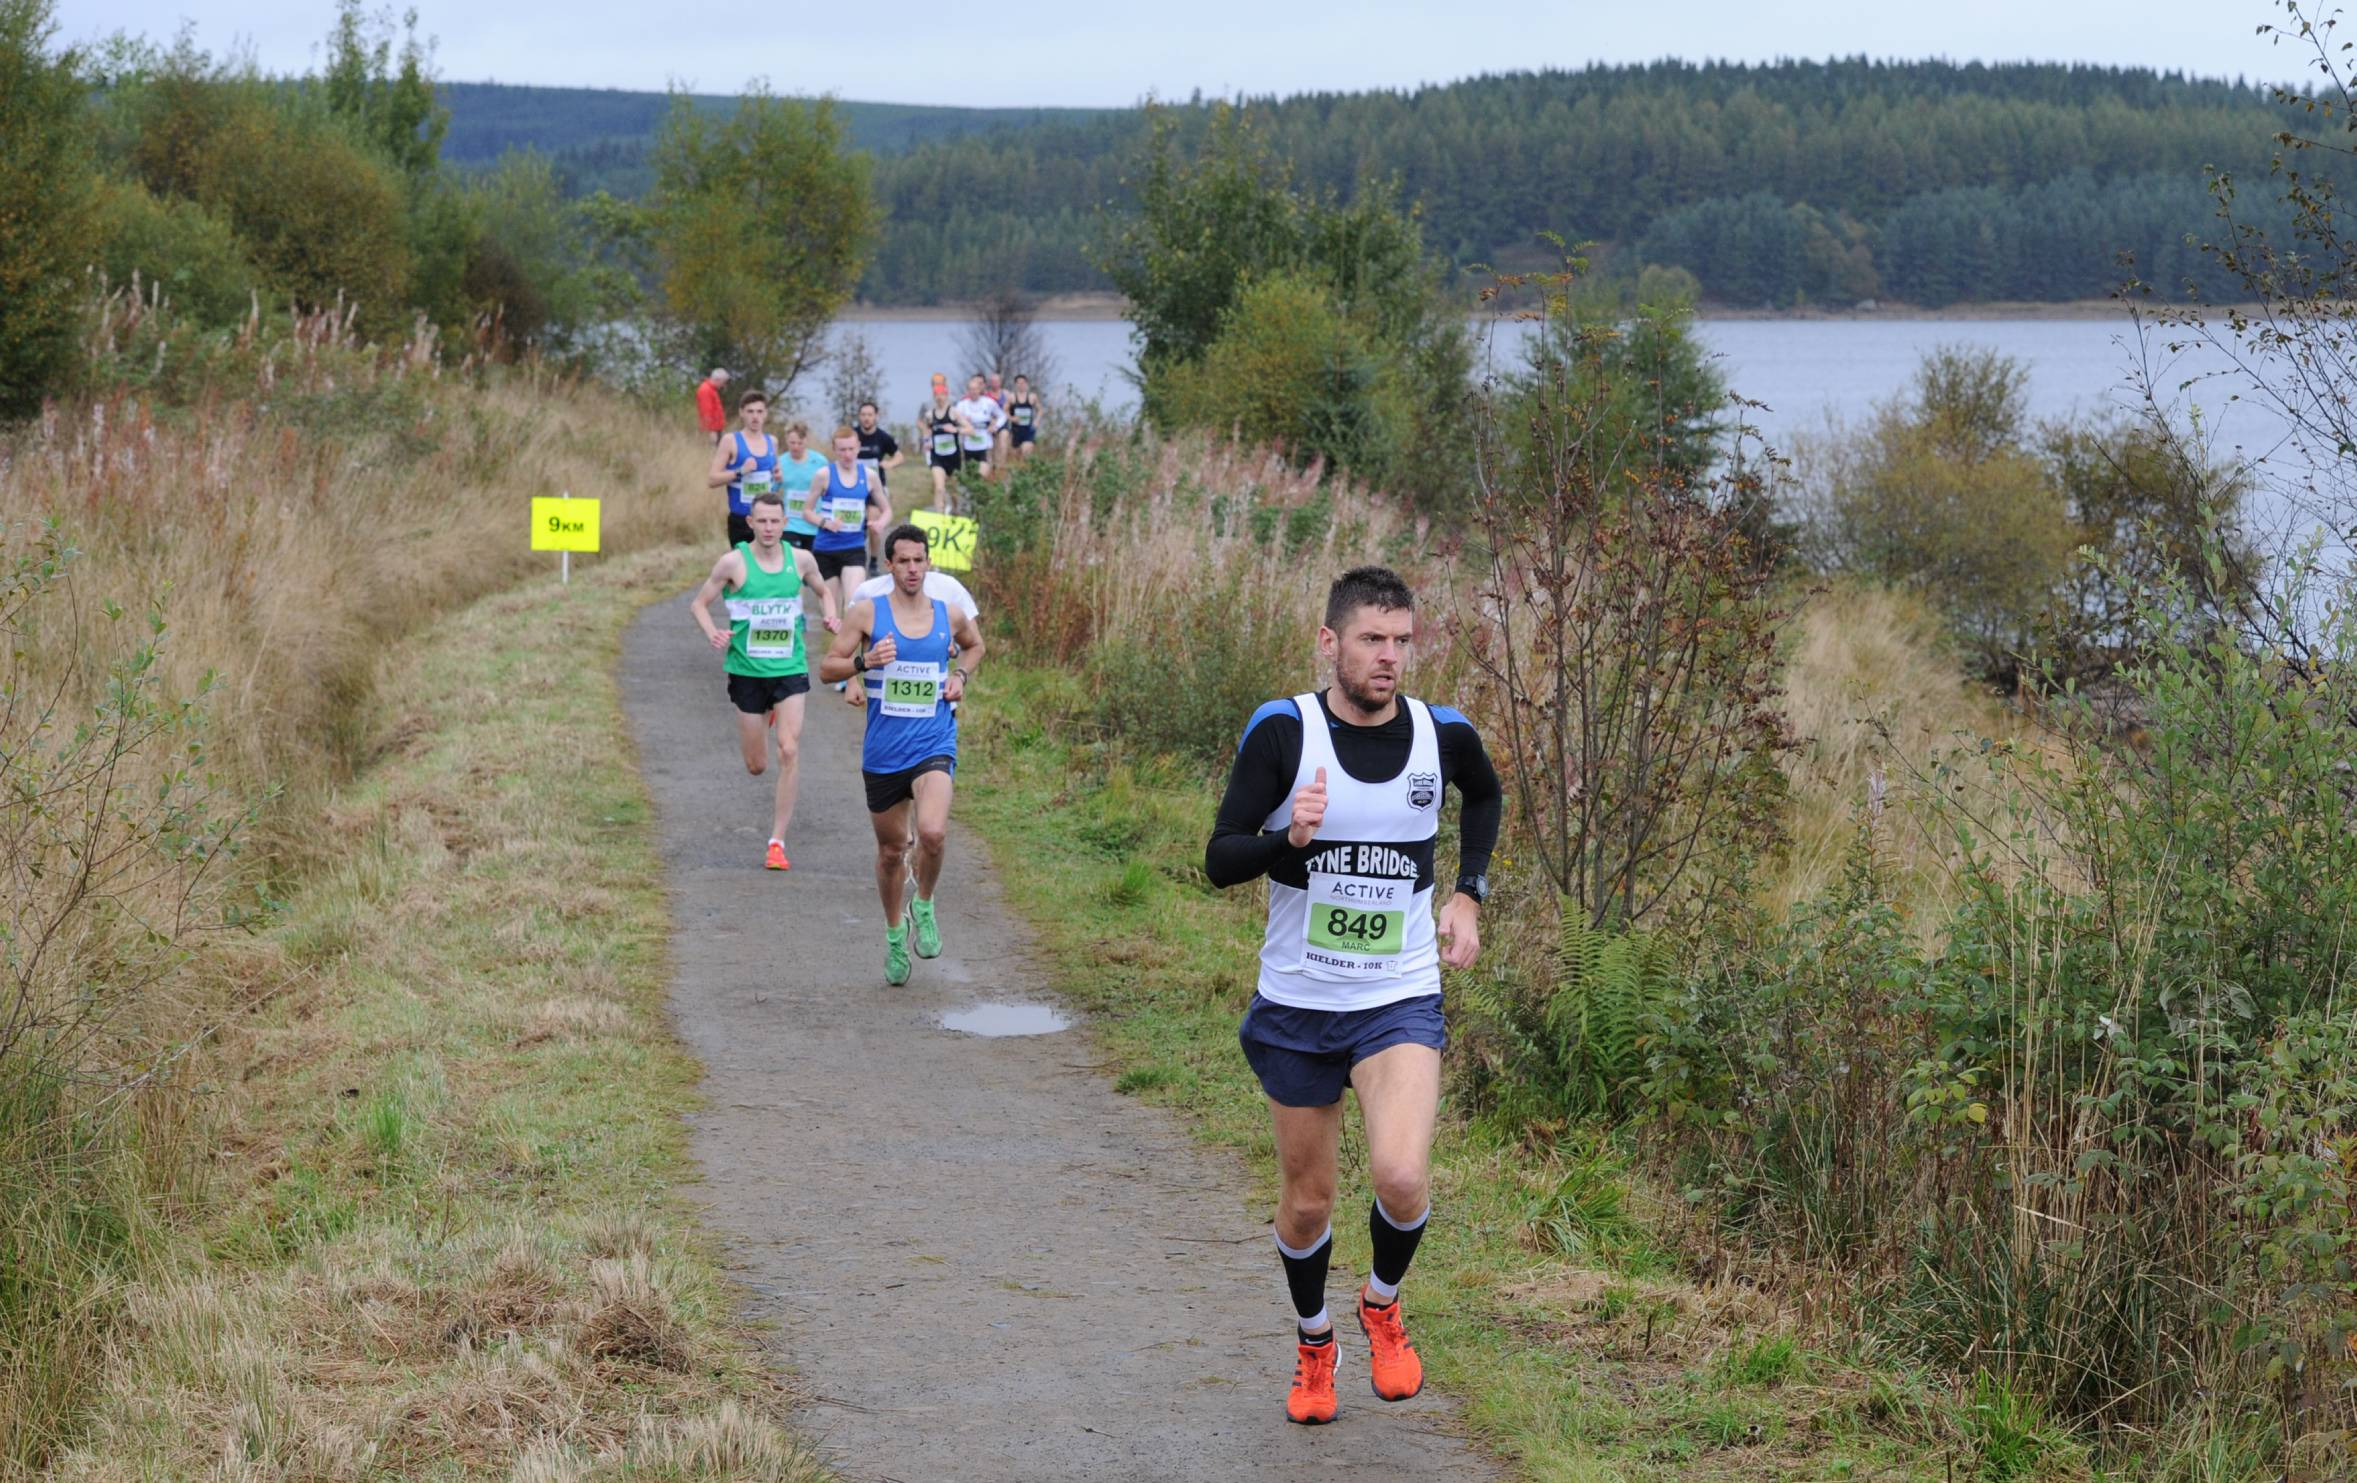 Dated:07/10/2017 Kielder Marathon Weekend Saturday 10K Run around Kielder resevoir